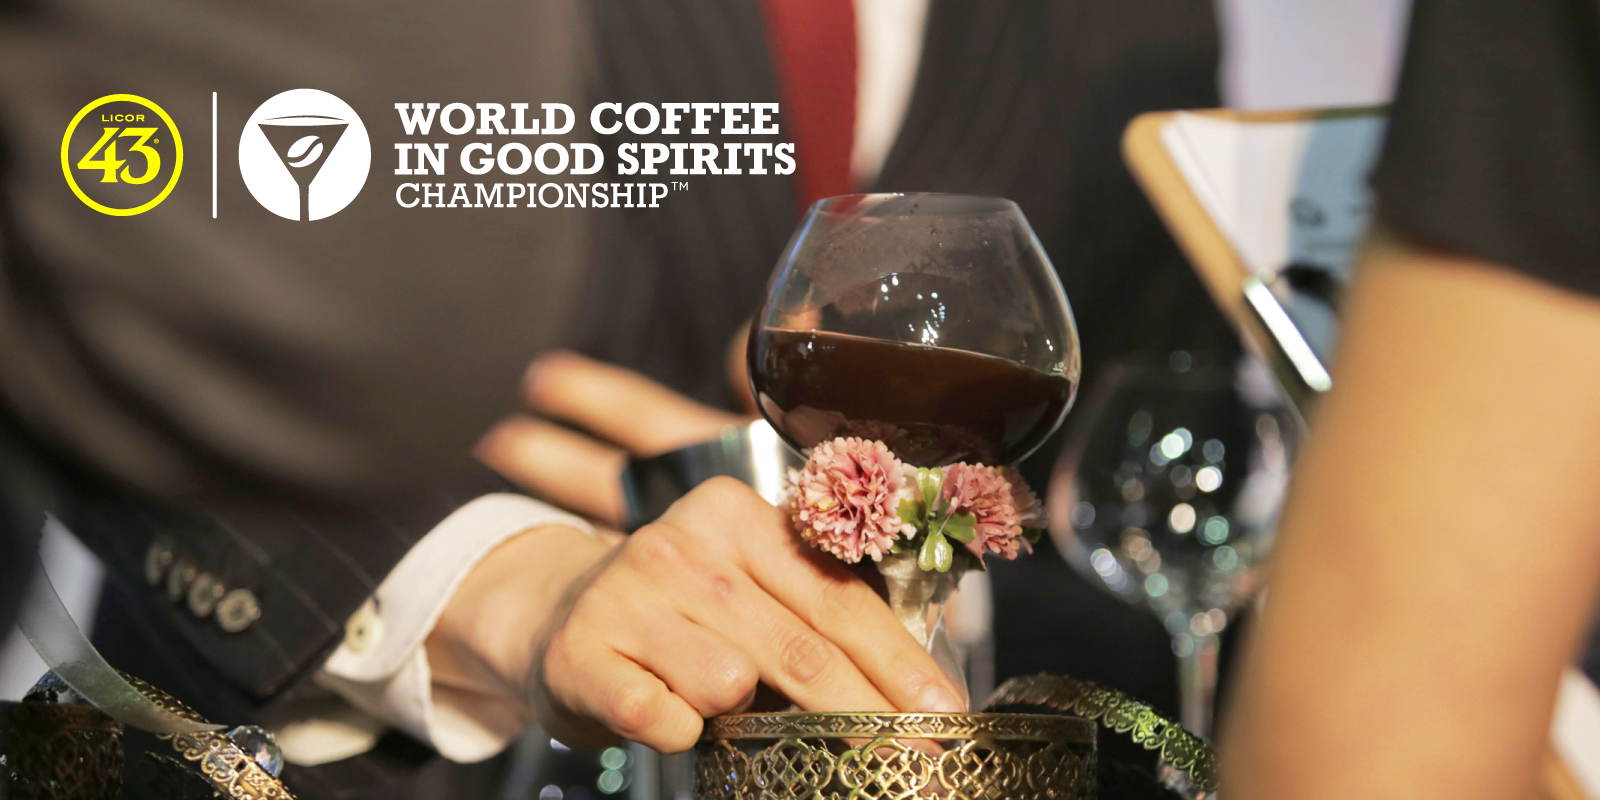 A squat piece of stemmed glassware decorated with dried flowers is served to a judge. There is a coffee cocktail in the cup. The image has the Licor 43 & World Coffee In Good Spirits Championships logos overlayed.